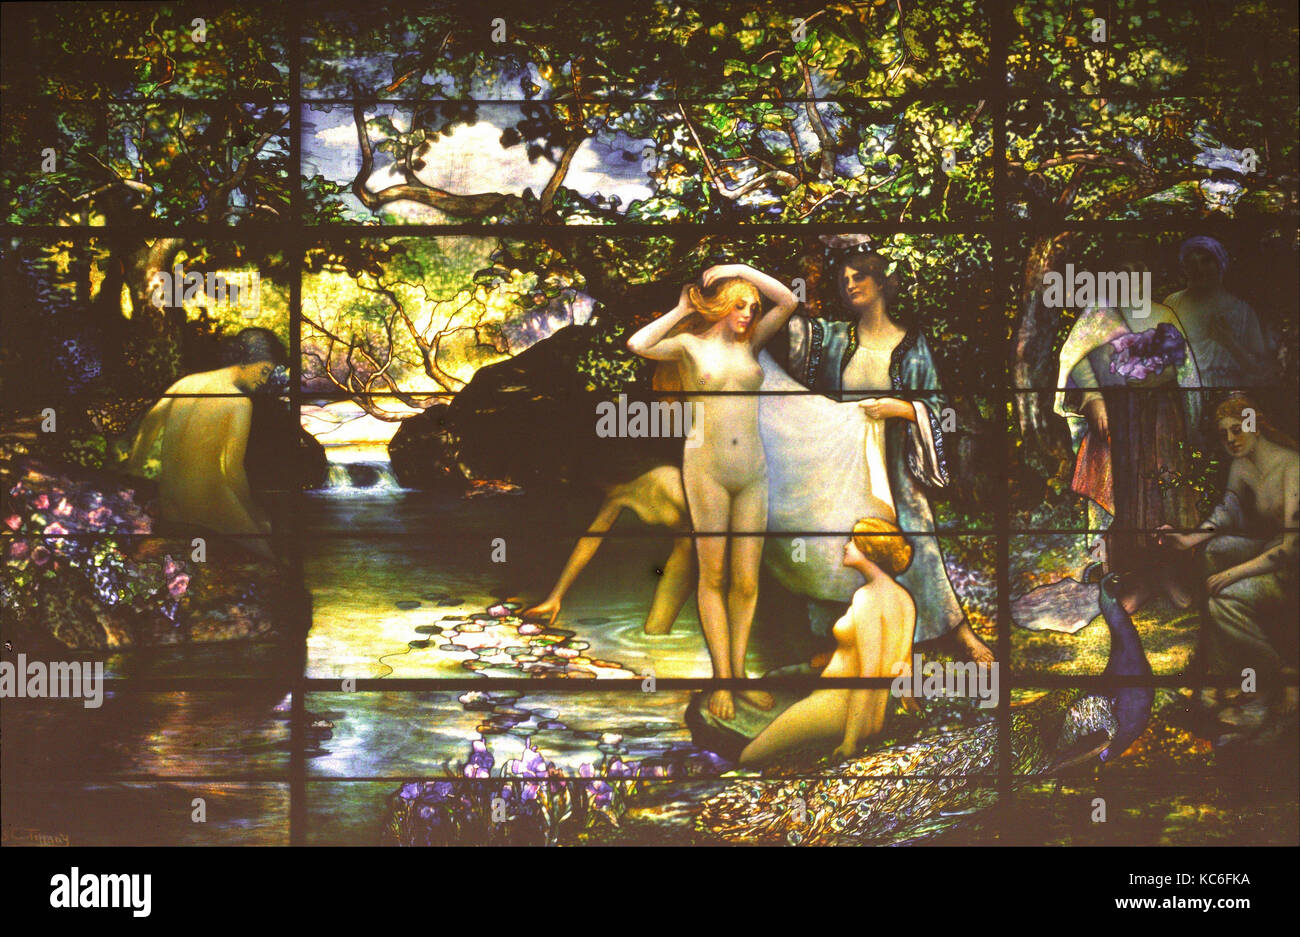 The Bathers, ca. 1914, Made in New York, United States, American, Autochrome, Image: 4 3/4 x 7 1/2 in. (12.1 x 19.1 - Stock Image